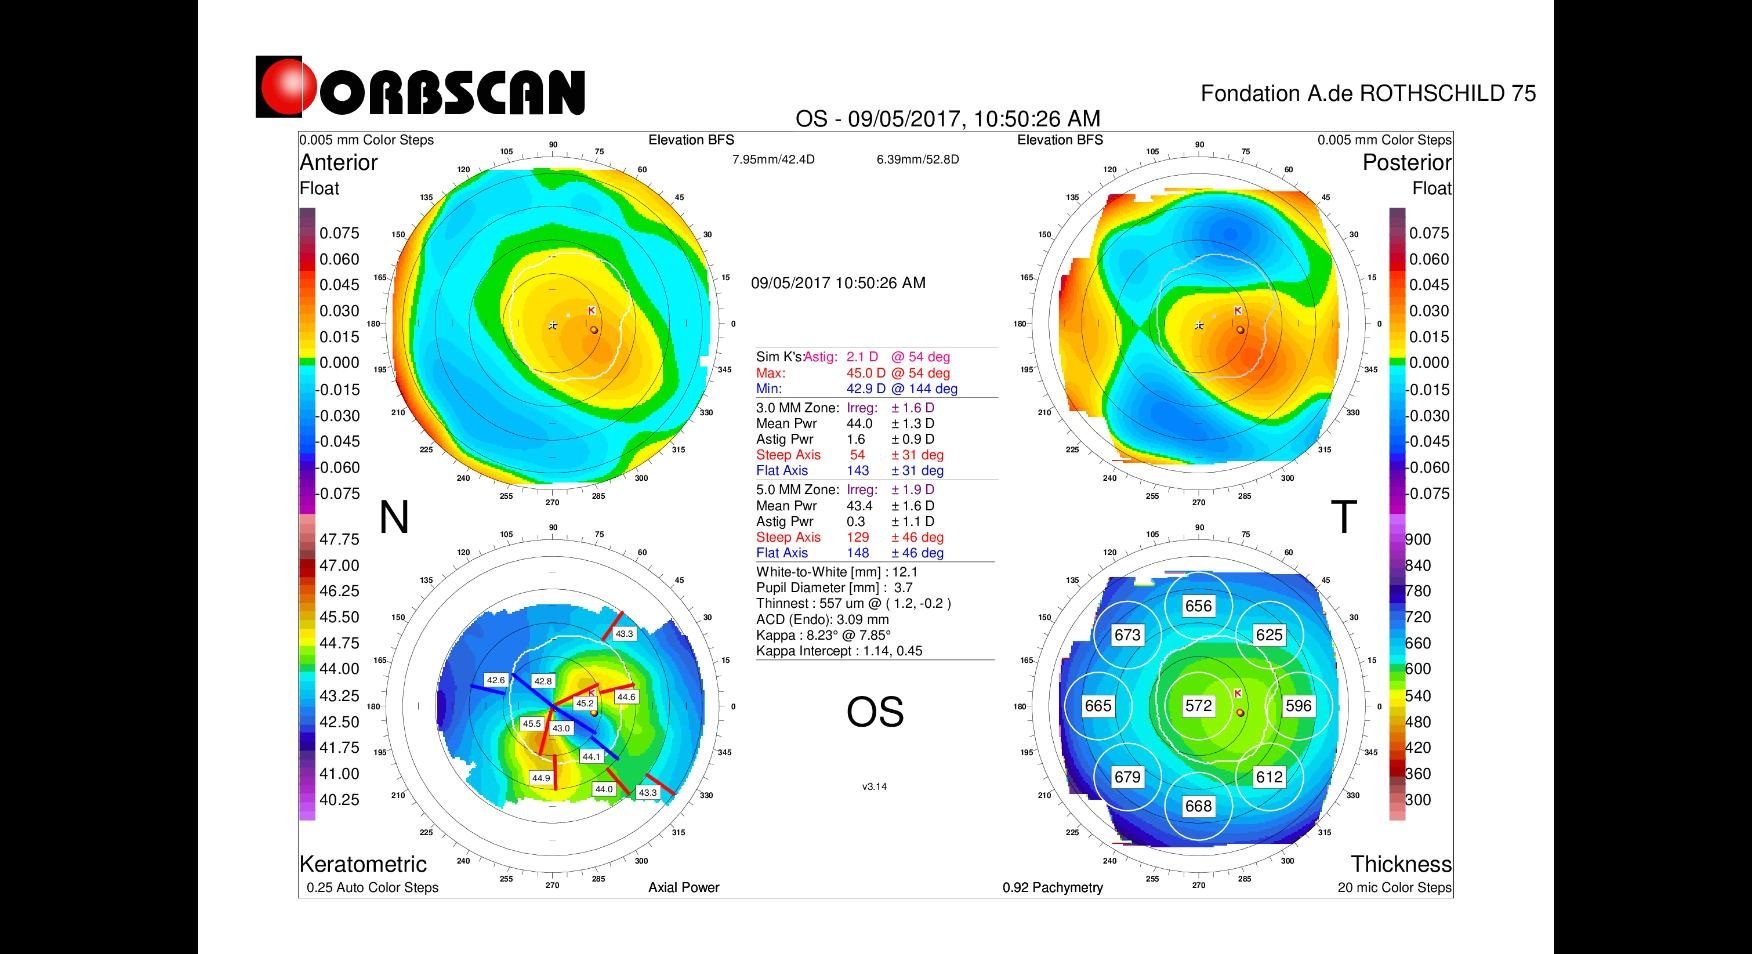 Orbscan corneal topography map.